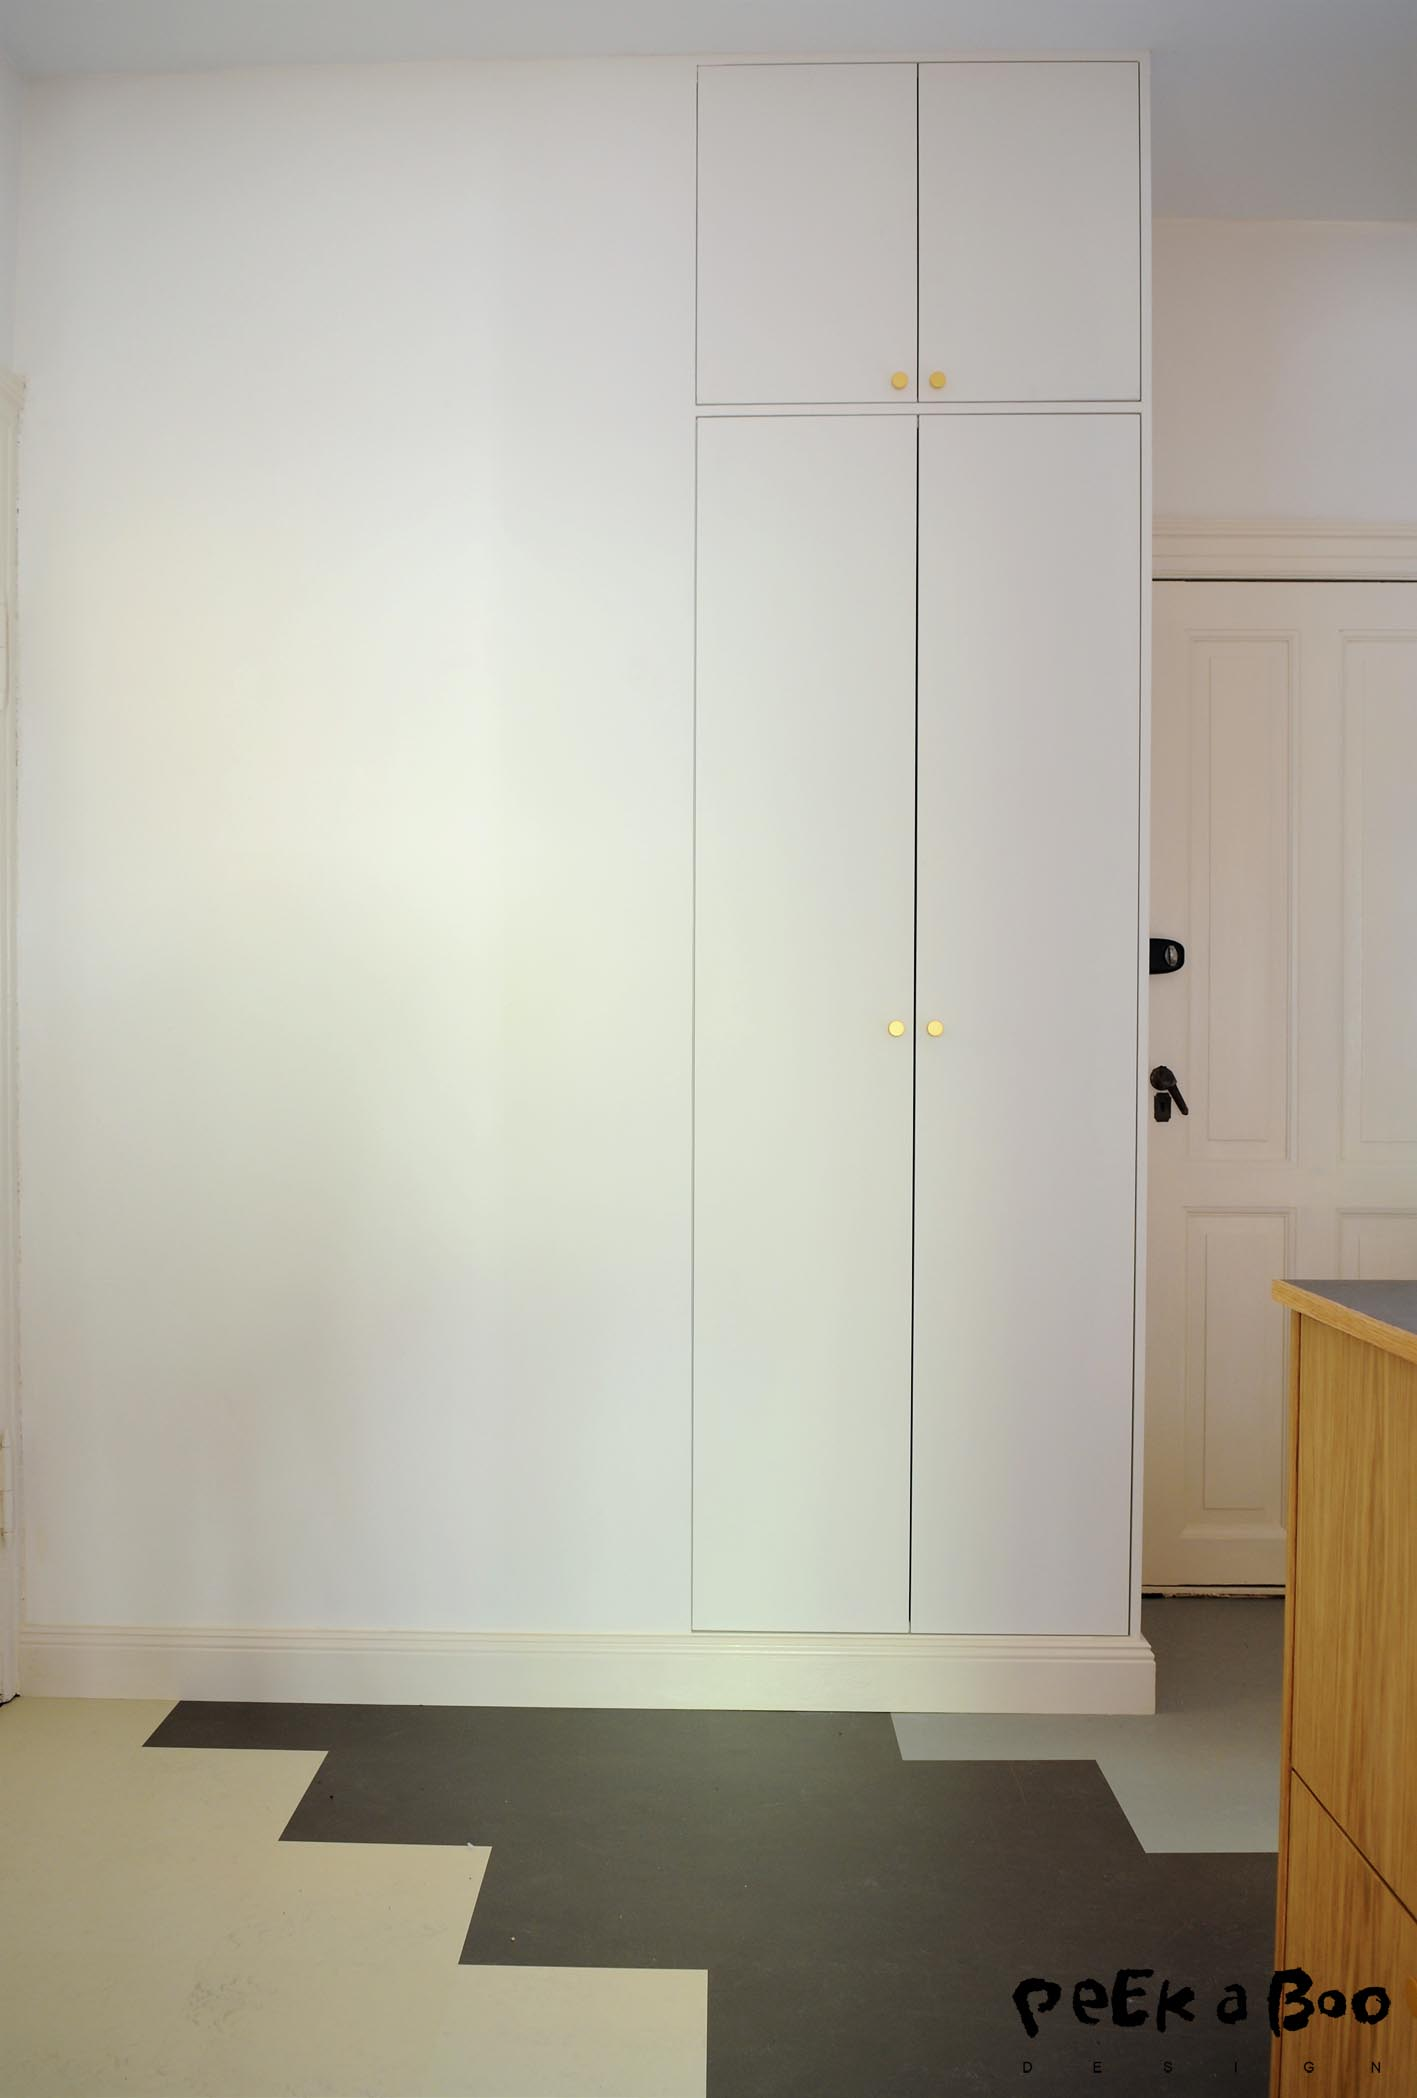 The built-in cabinets also got the como handles and they look just as perfect on the cream colored wall cabinet.